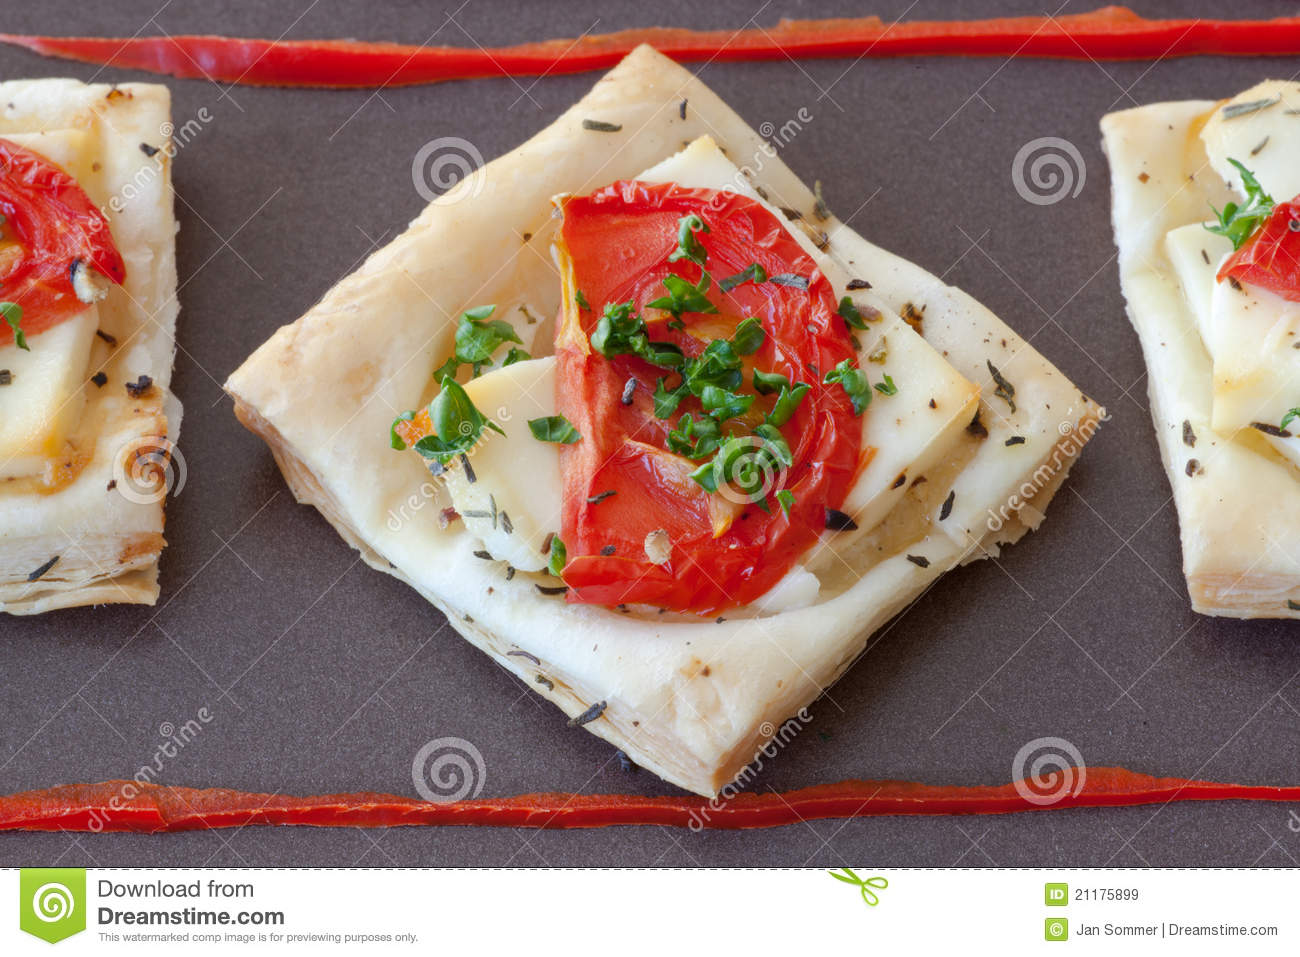 Flaky pastry snack with feta, tomatoes and herbs